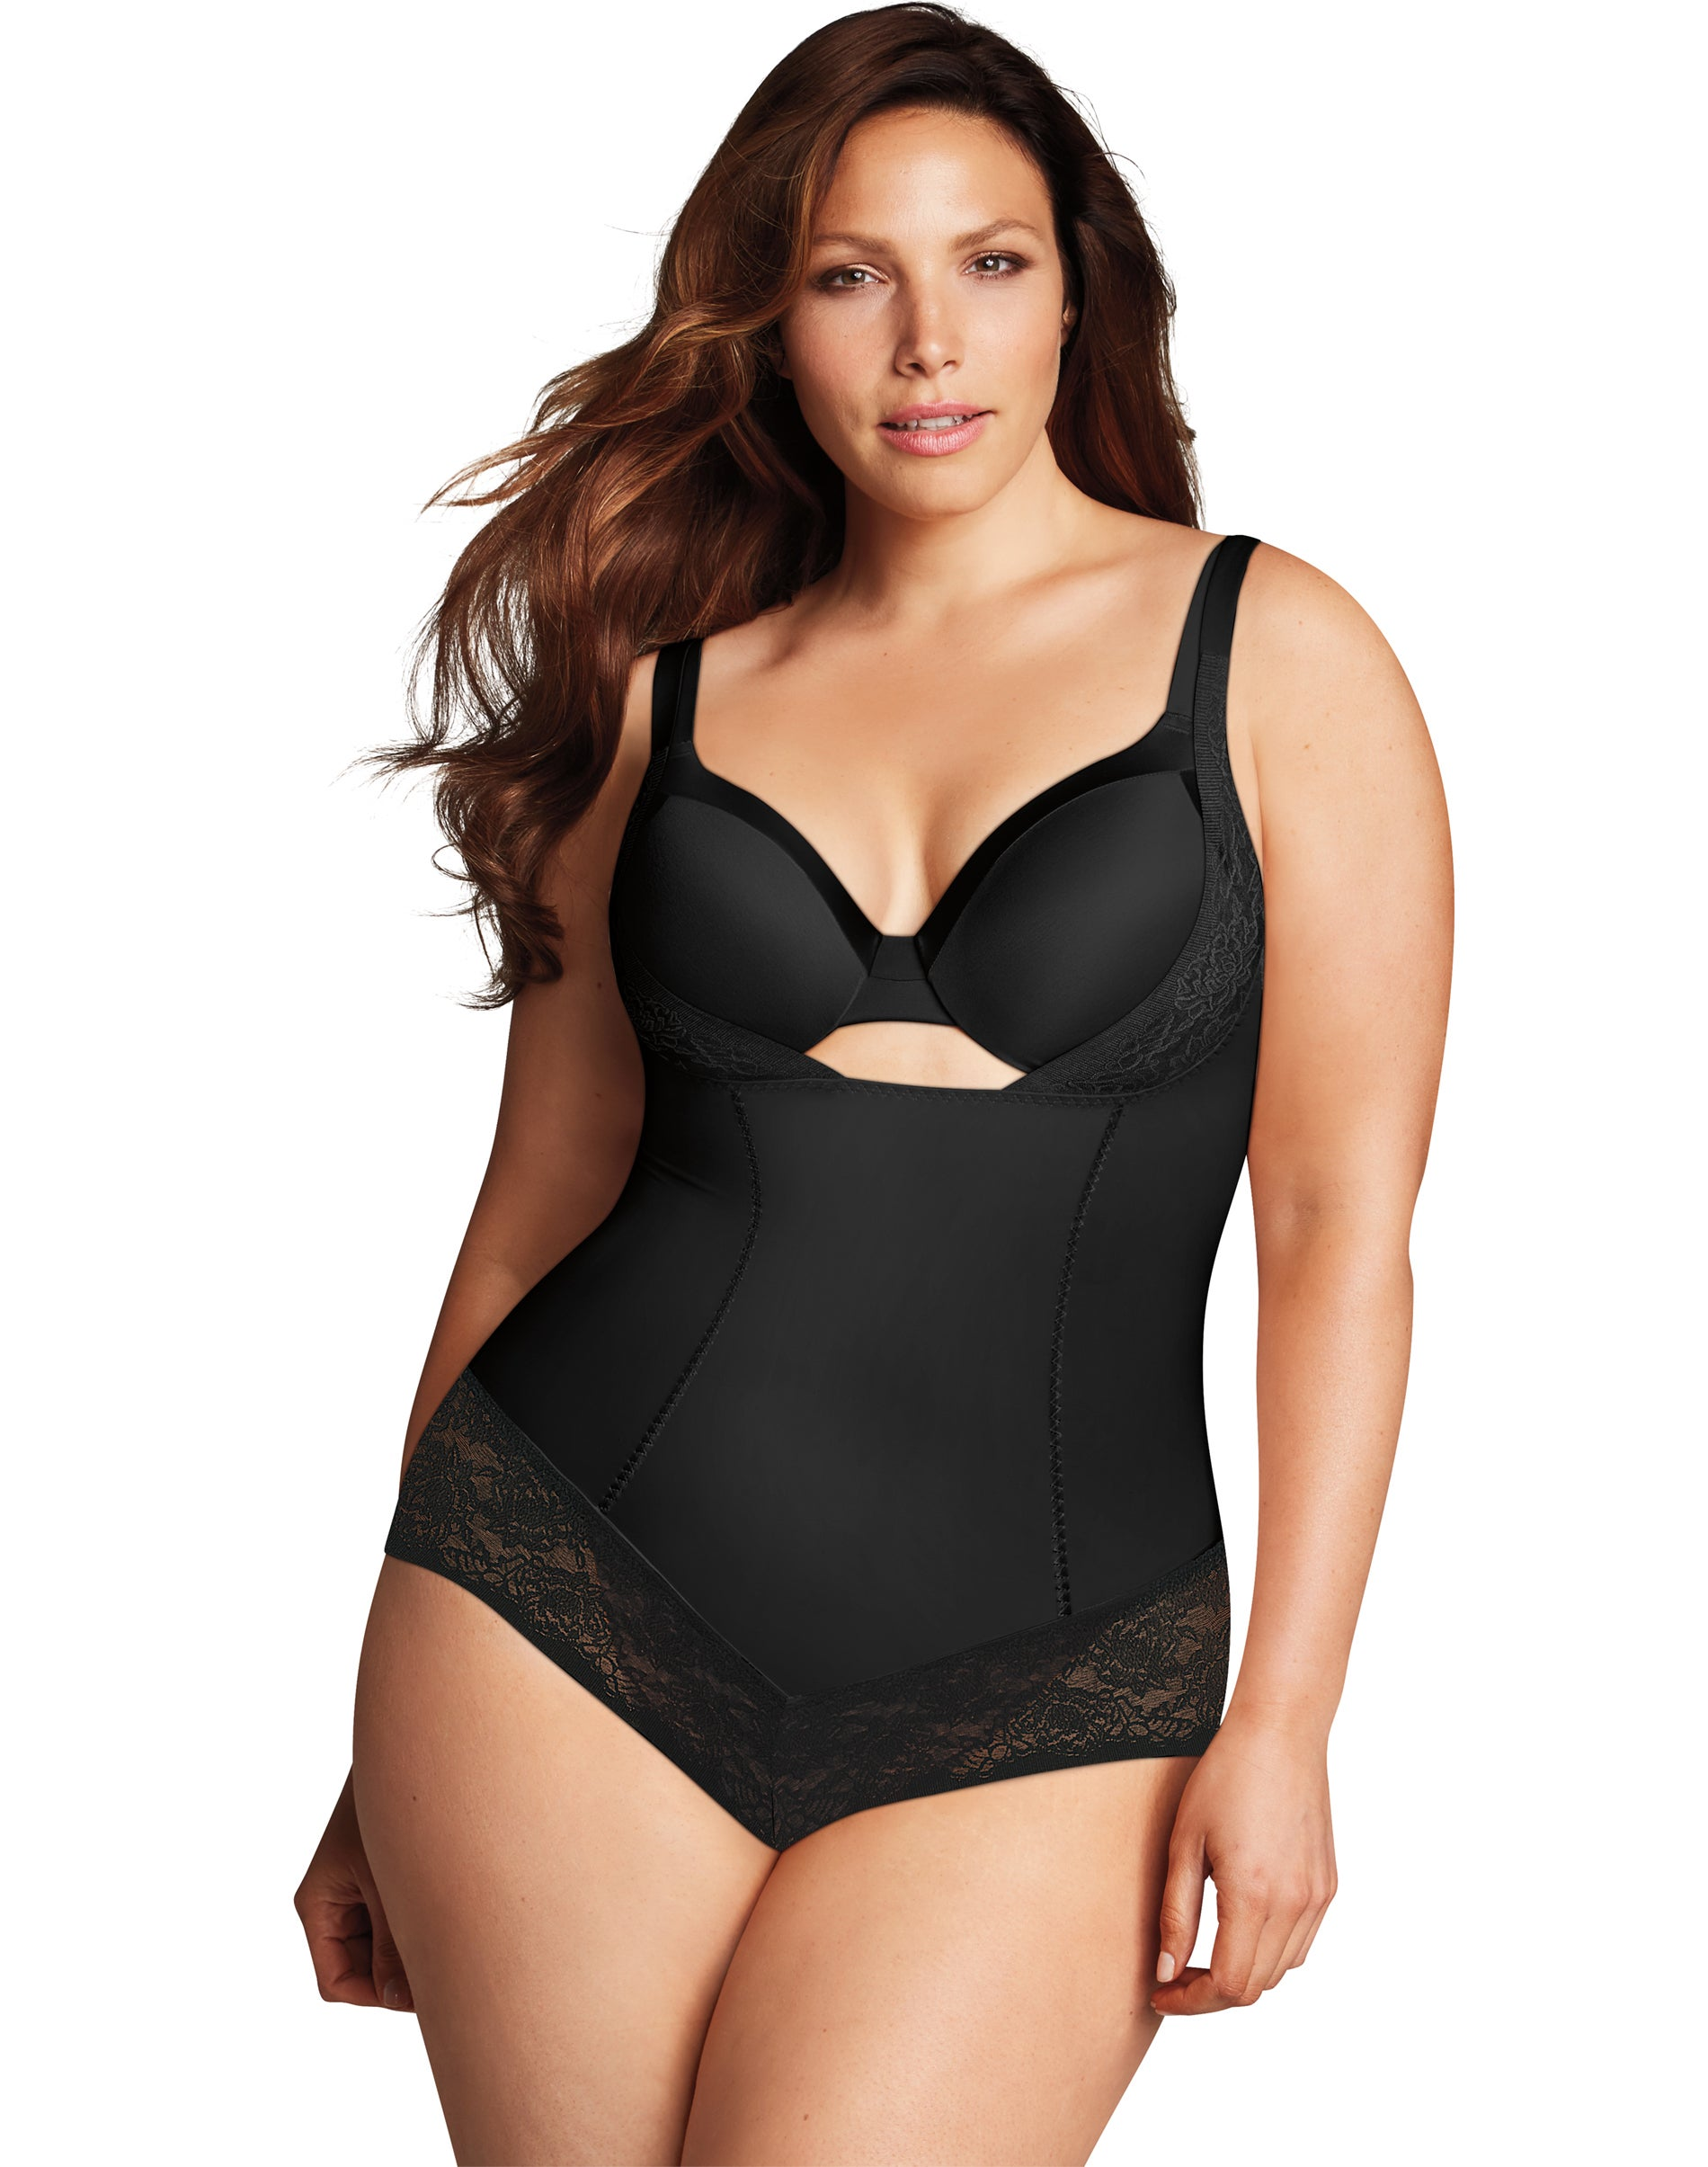 Curvi Shapewear Womens Underwire Body Slimmer With Hidden Bra